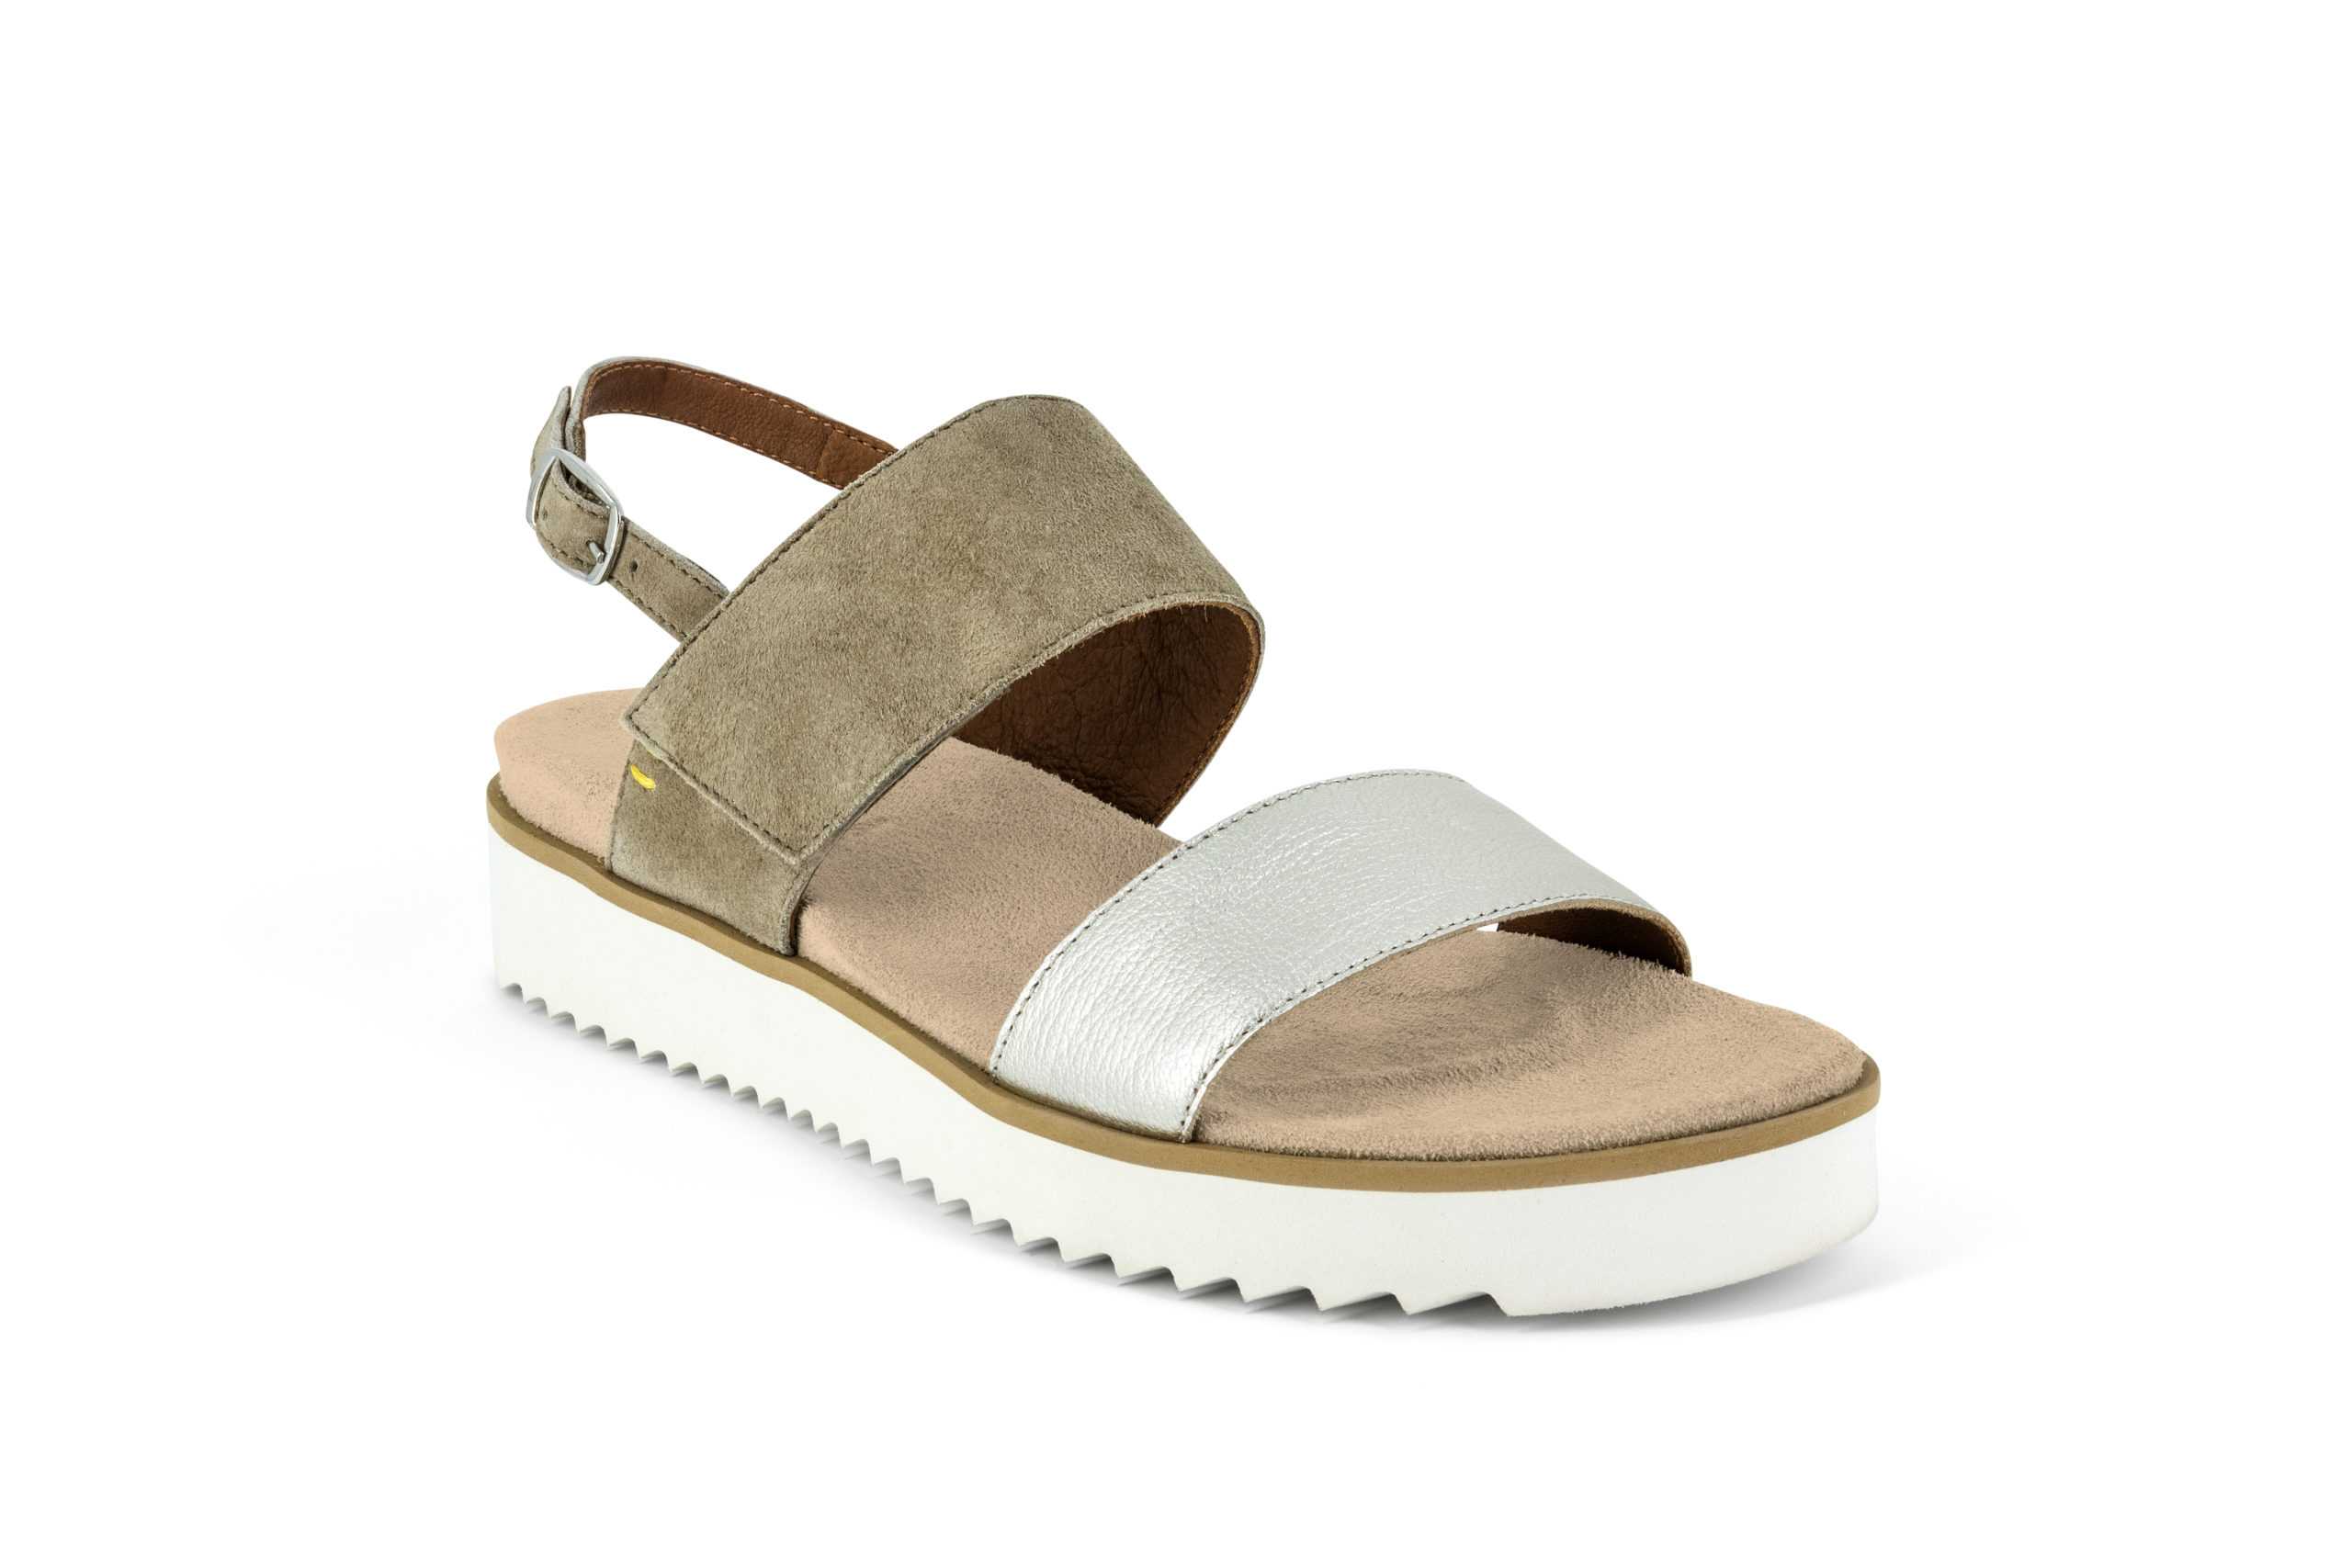 Benvado Lilly Pelle Argento/Taupe